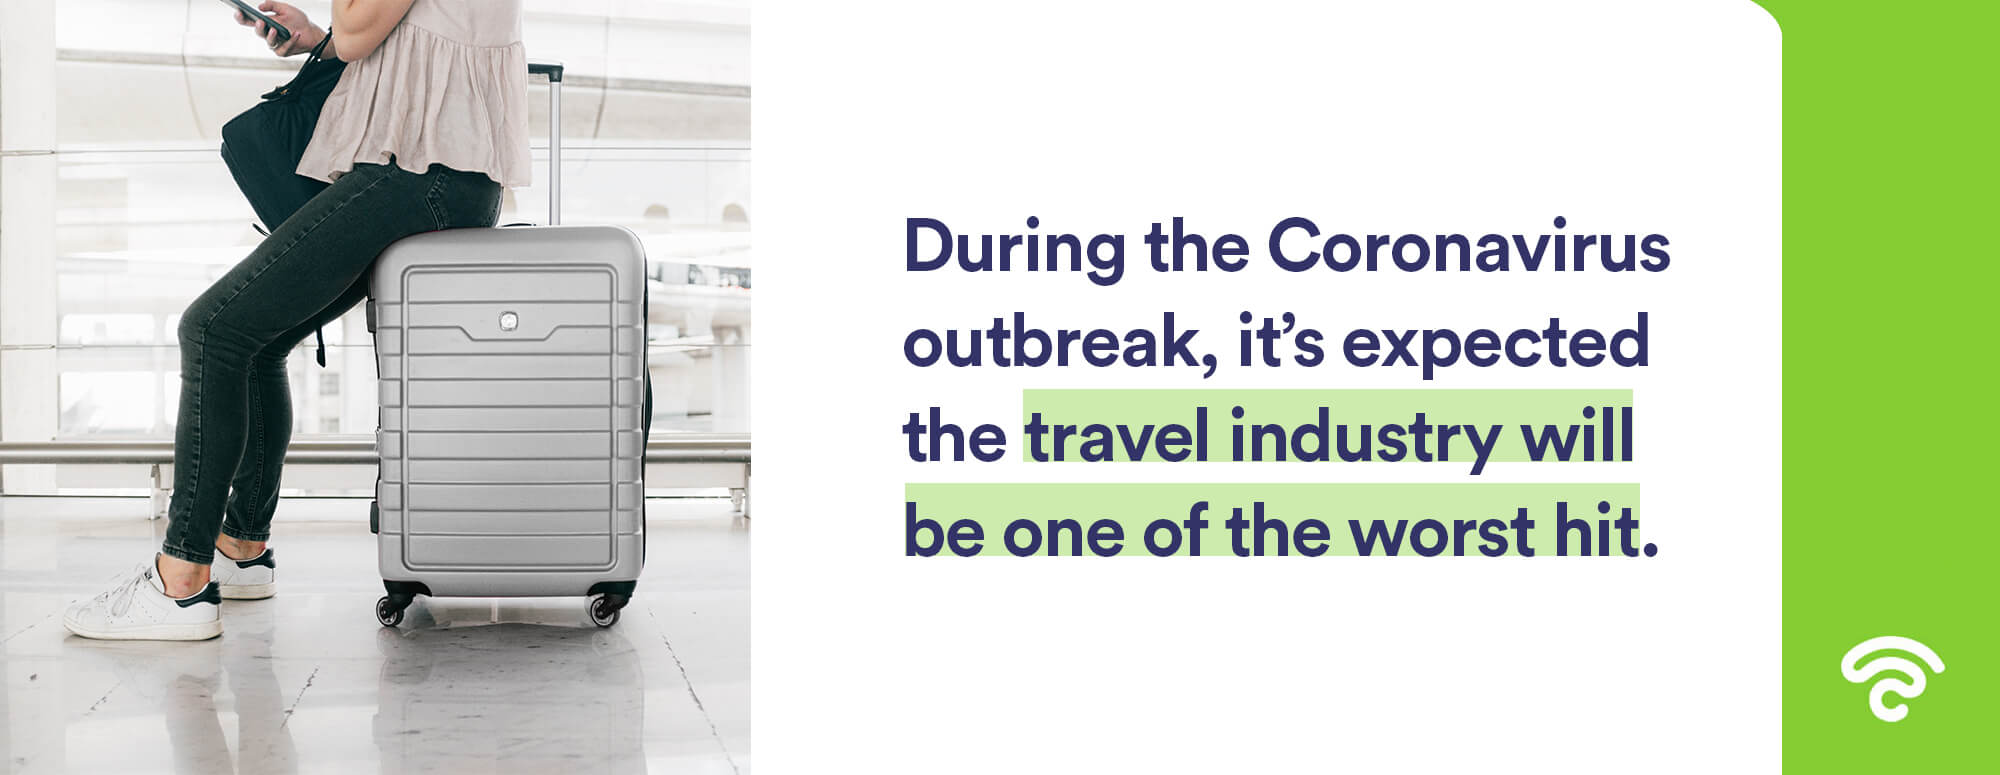 Coronavirus impact on travel